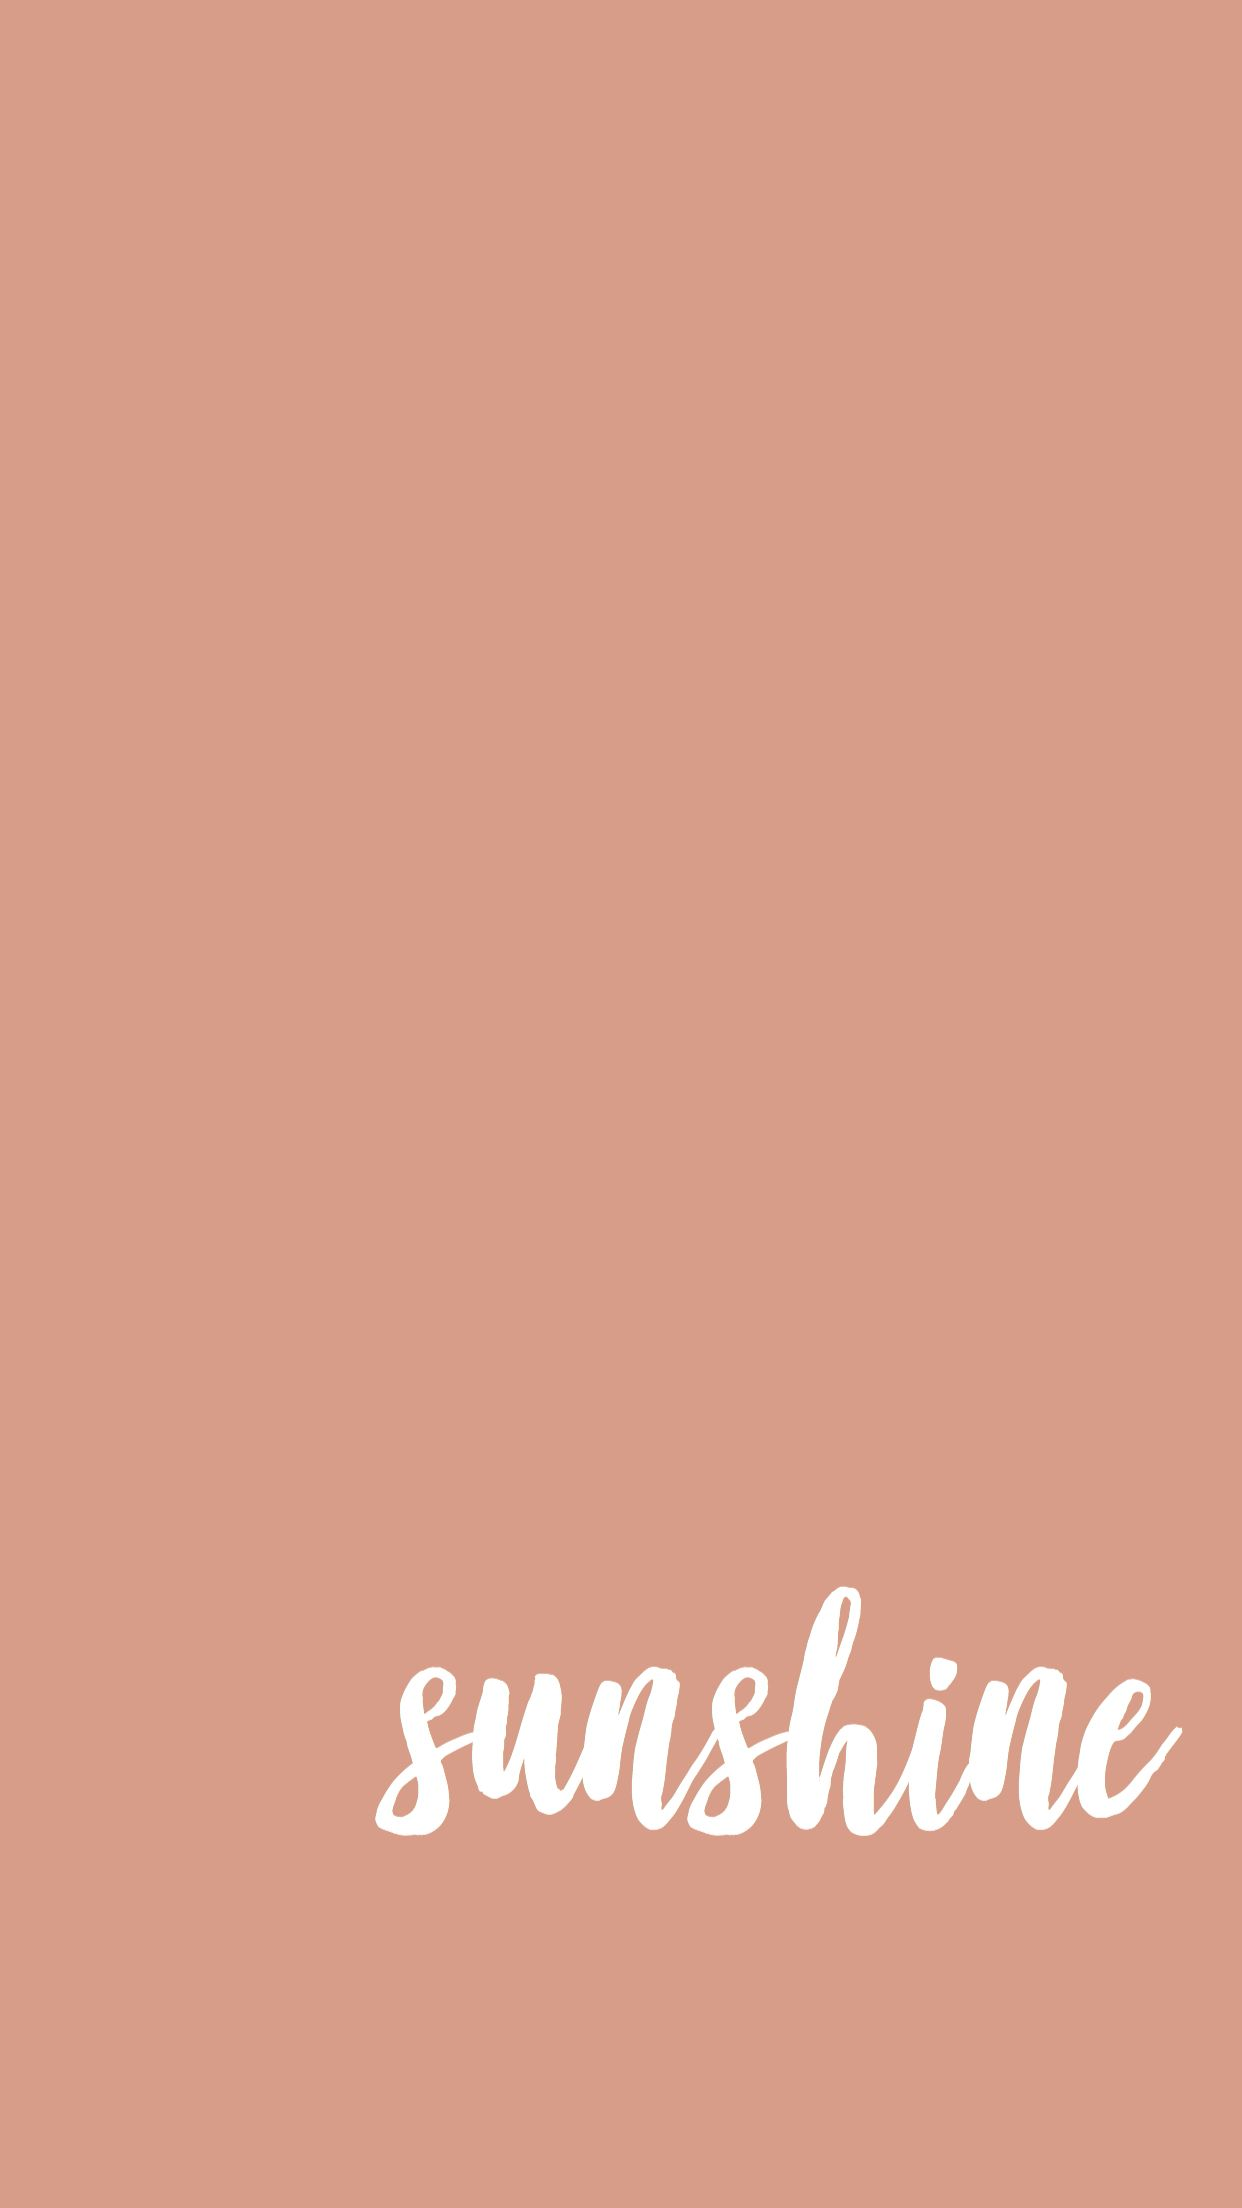 Pin By Ellaa On Insta Captions Iphone Wallpaper Cute